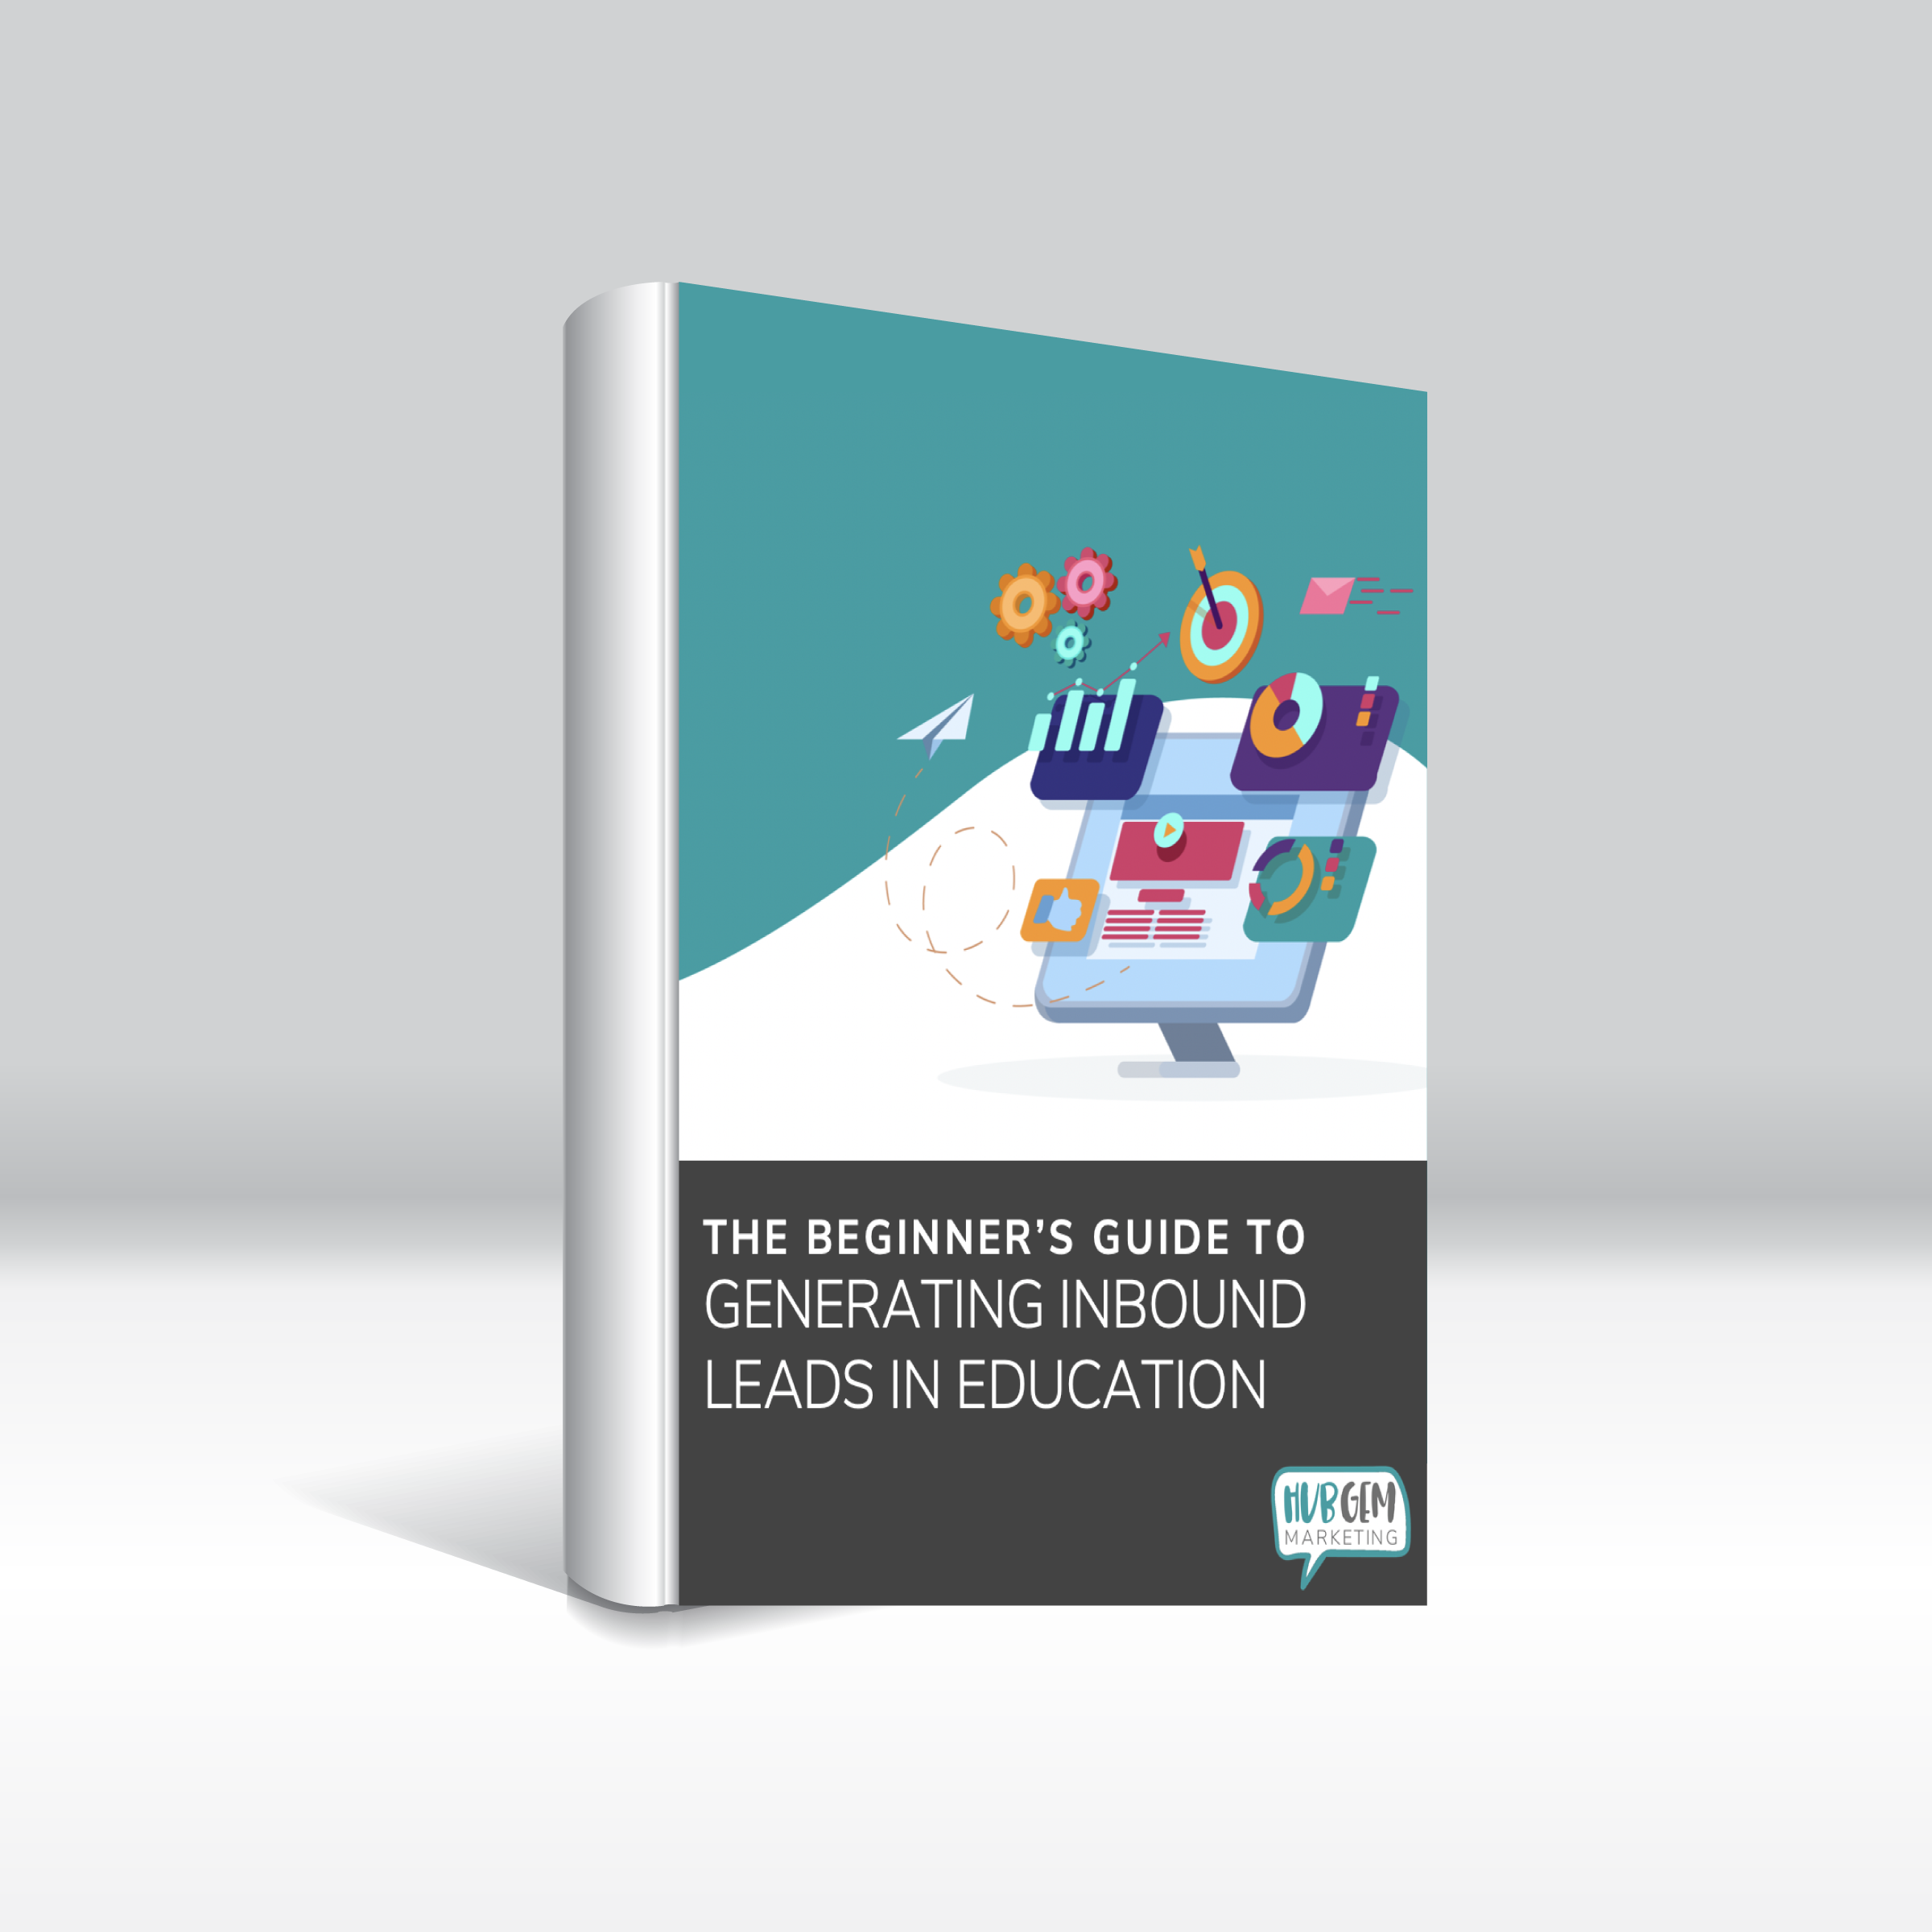 The beginners guide to generating inbound leads in education